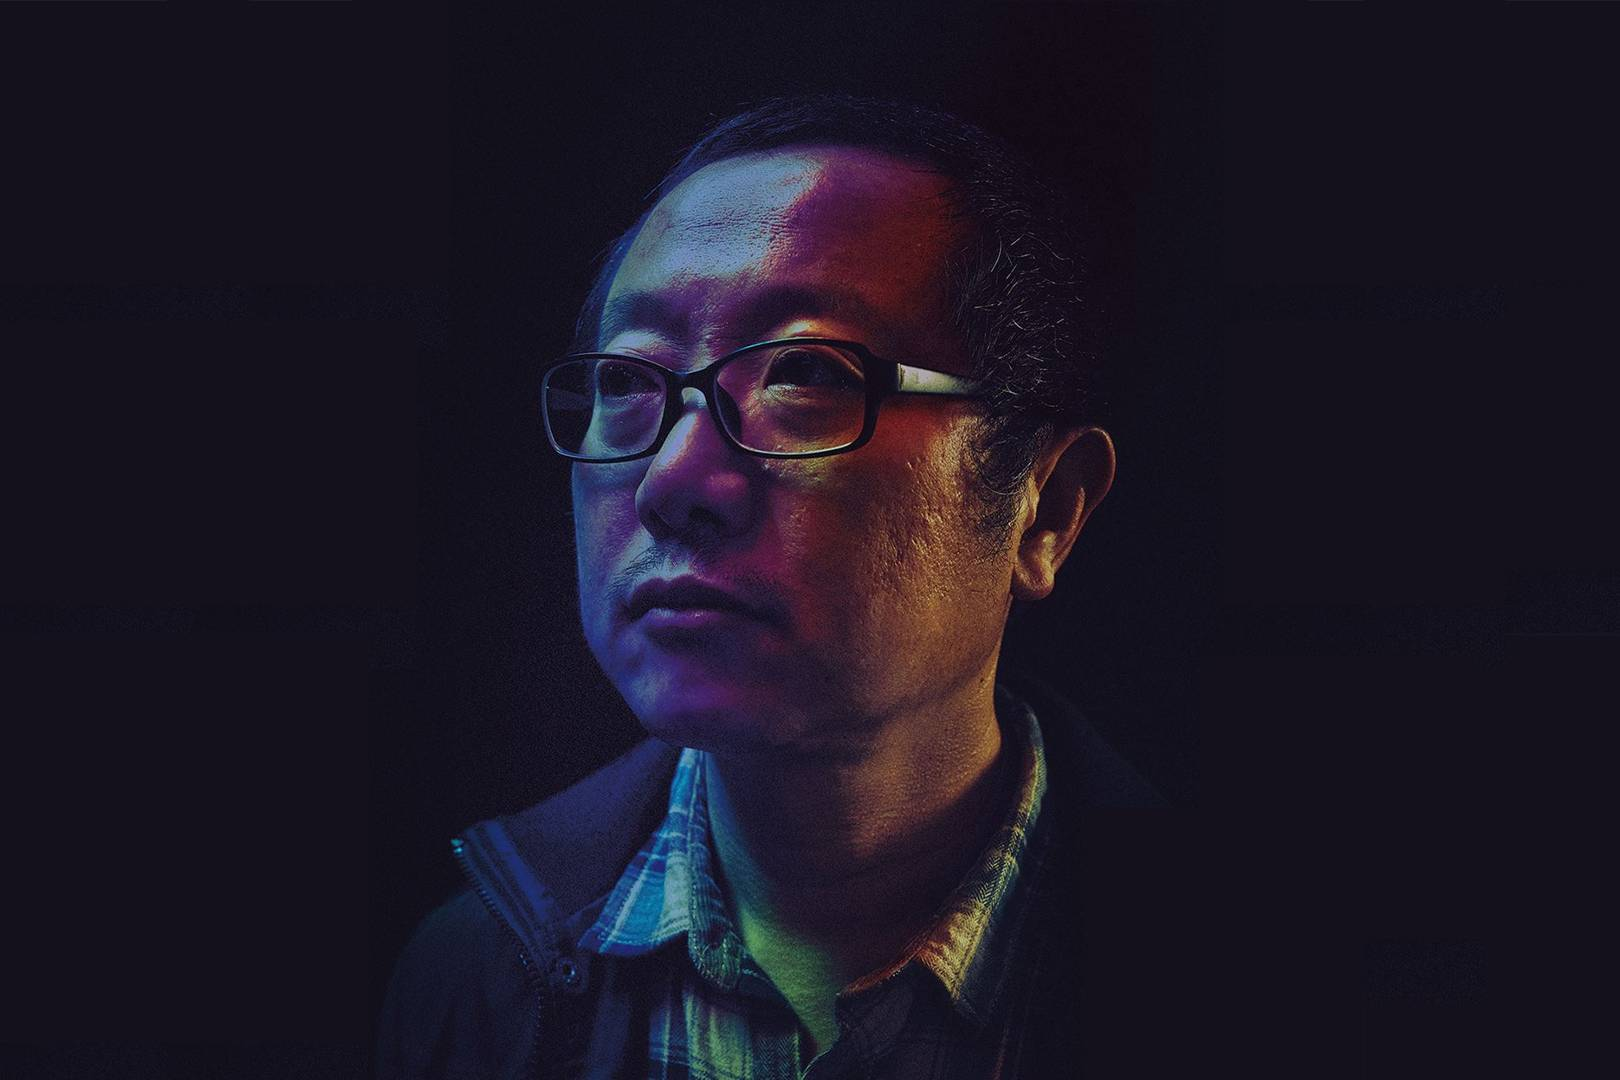 Cixin Liu is the author of your next favourite sci-fi novel